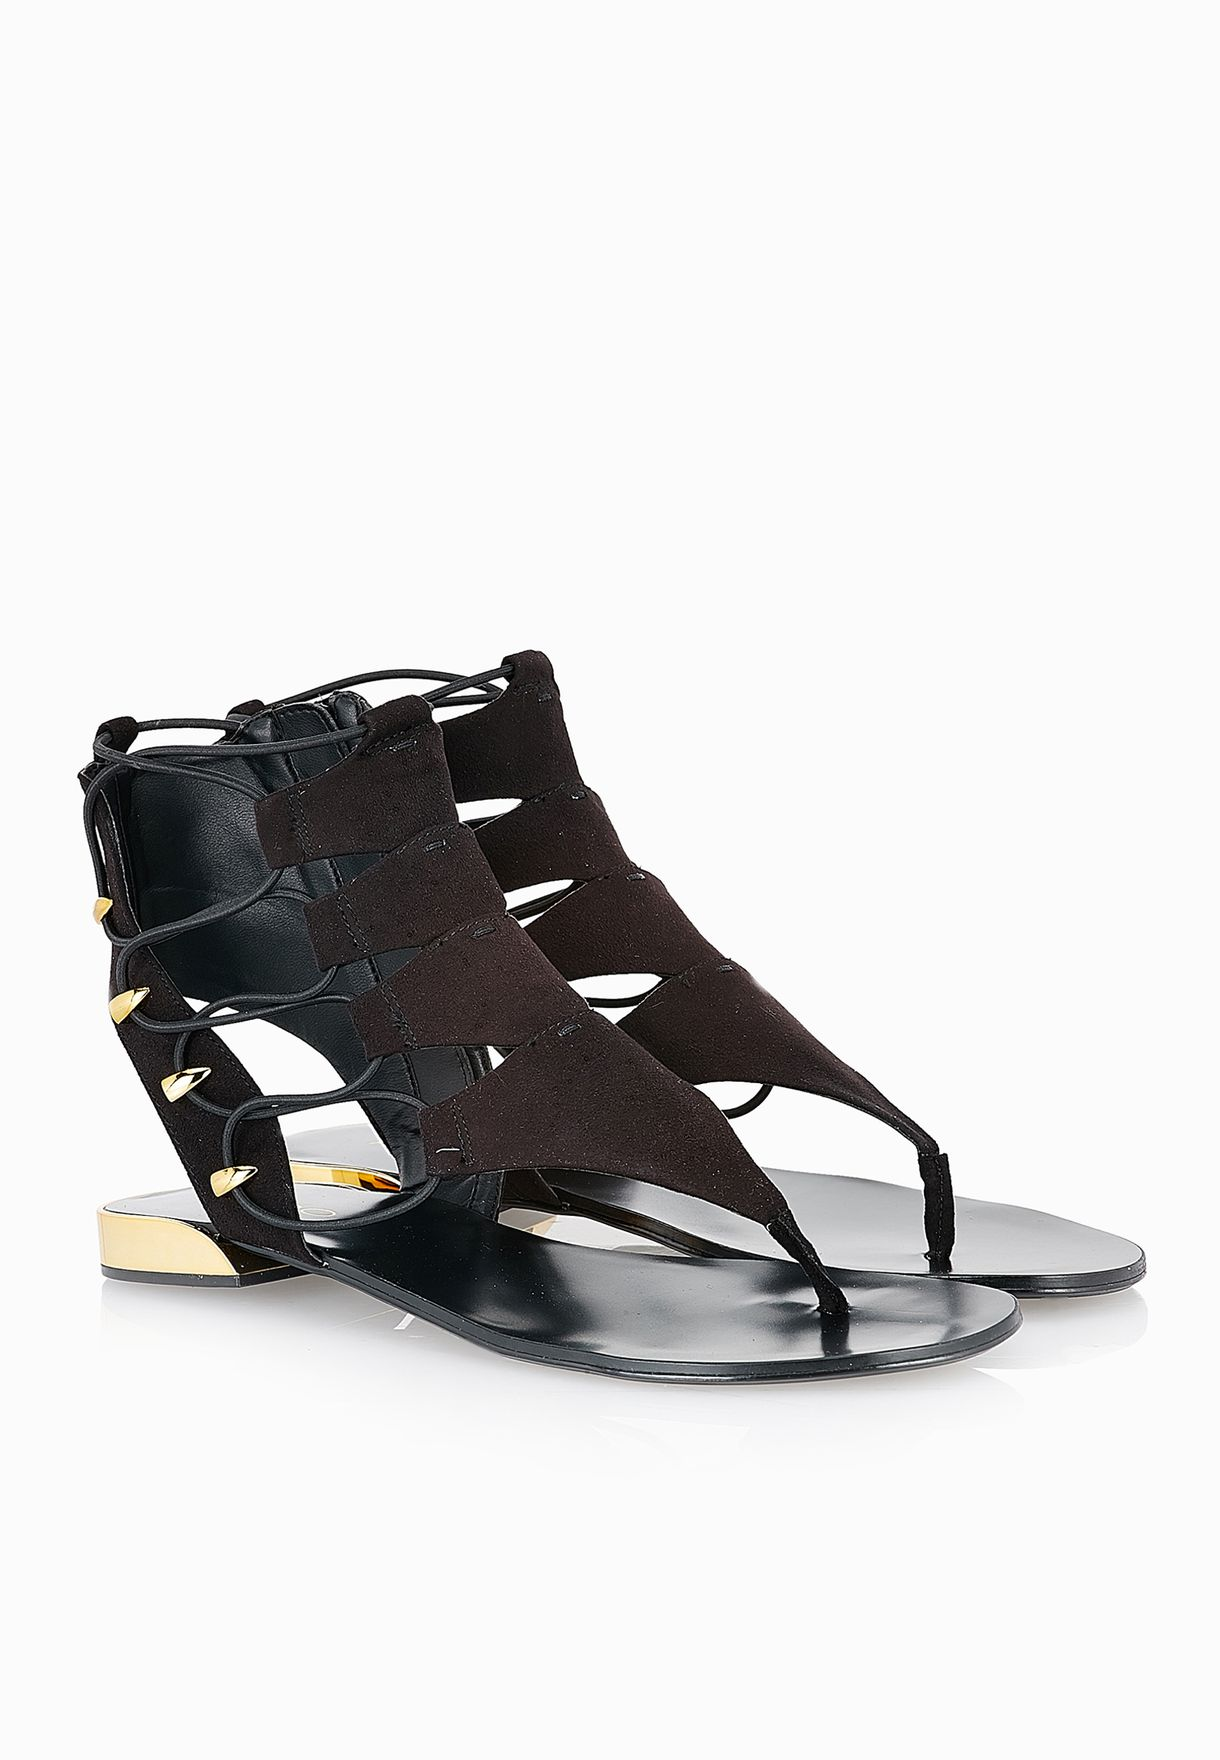 0ff9904a6bfc Shop Aldo black Athena Thong Strappy Sandals for Women in Kuwait ...